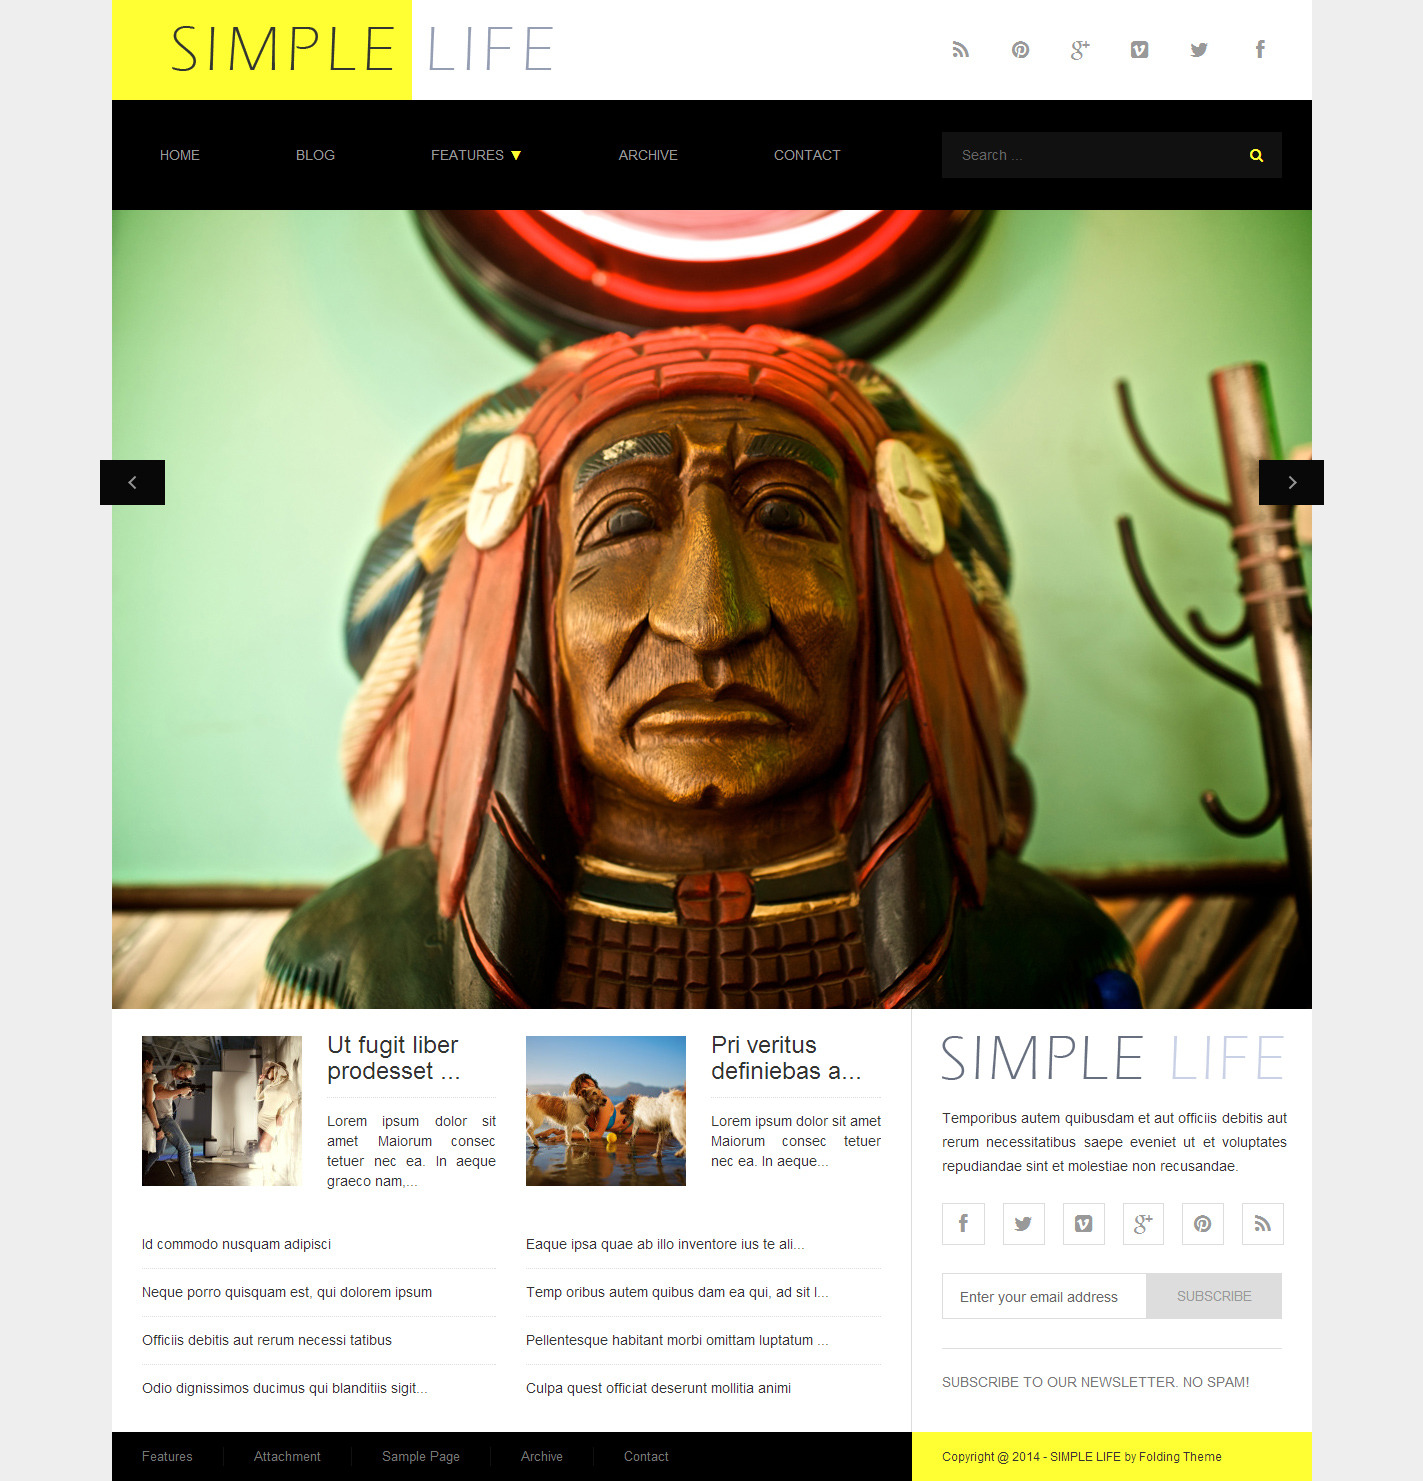 Simple Life - WordPress Blog Theme, AdSense Ready - simple life wordpress theme - attachment template